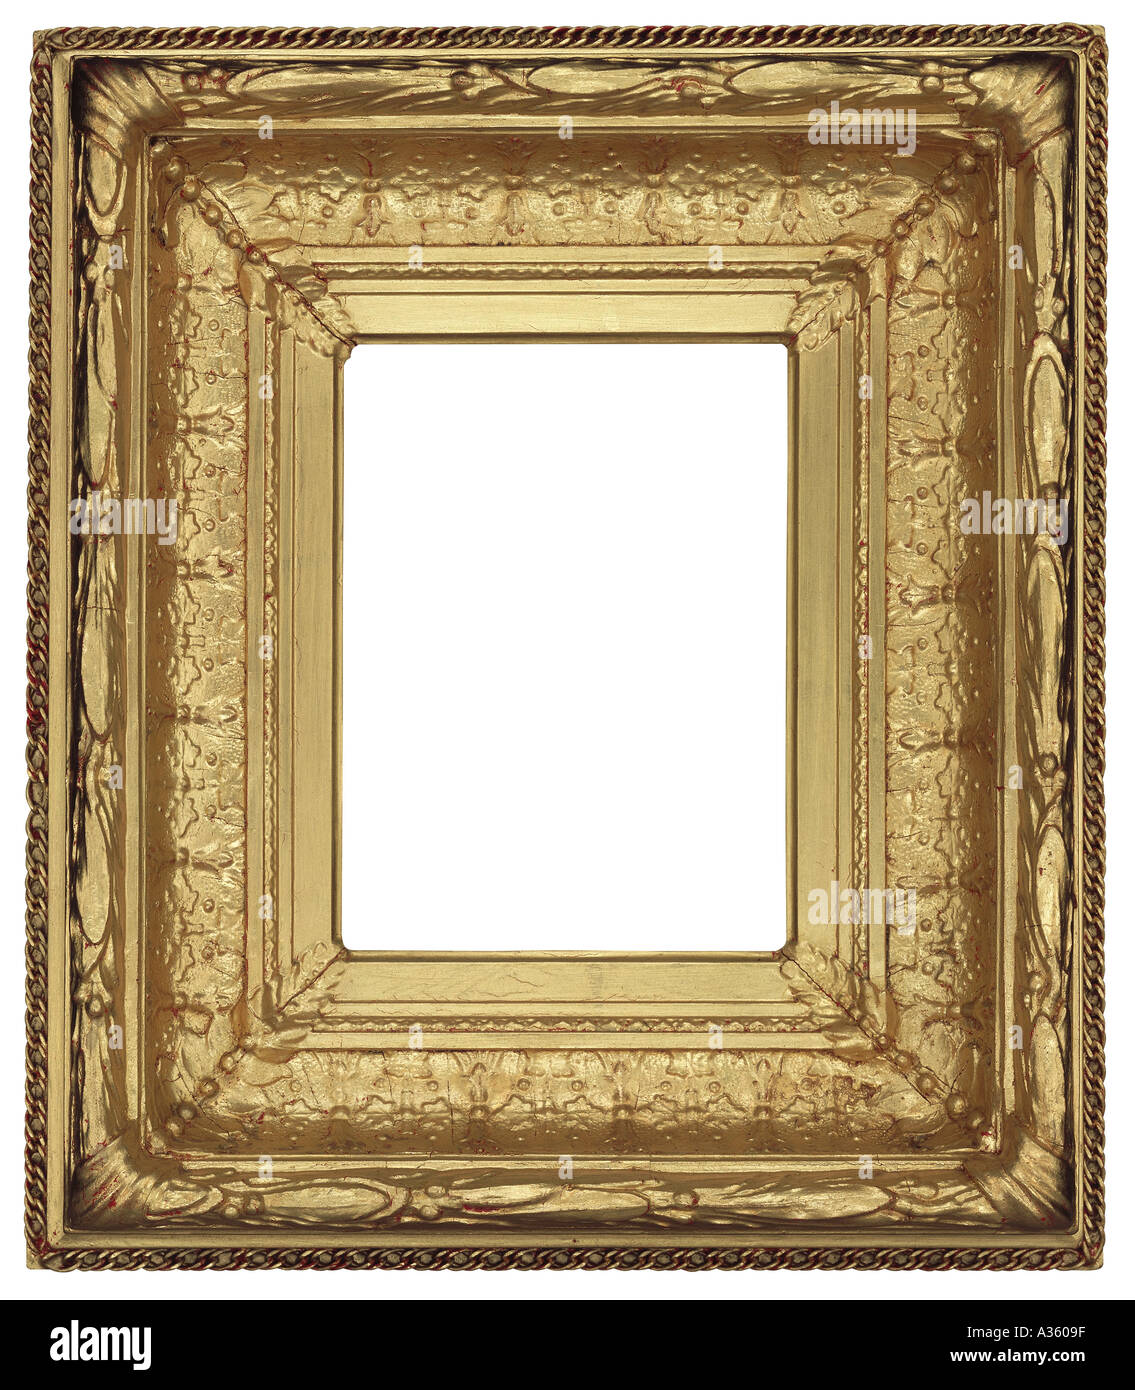 c885b28a1a2 A vertical thick gold gilded shiny rectangular decorative ornate antique  frame